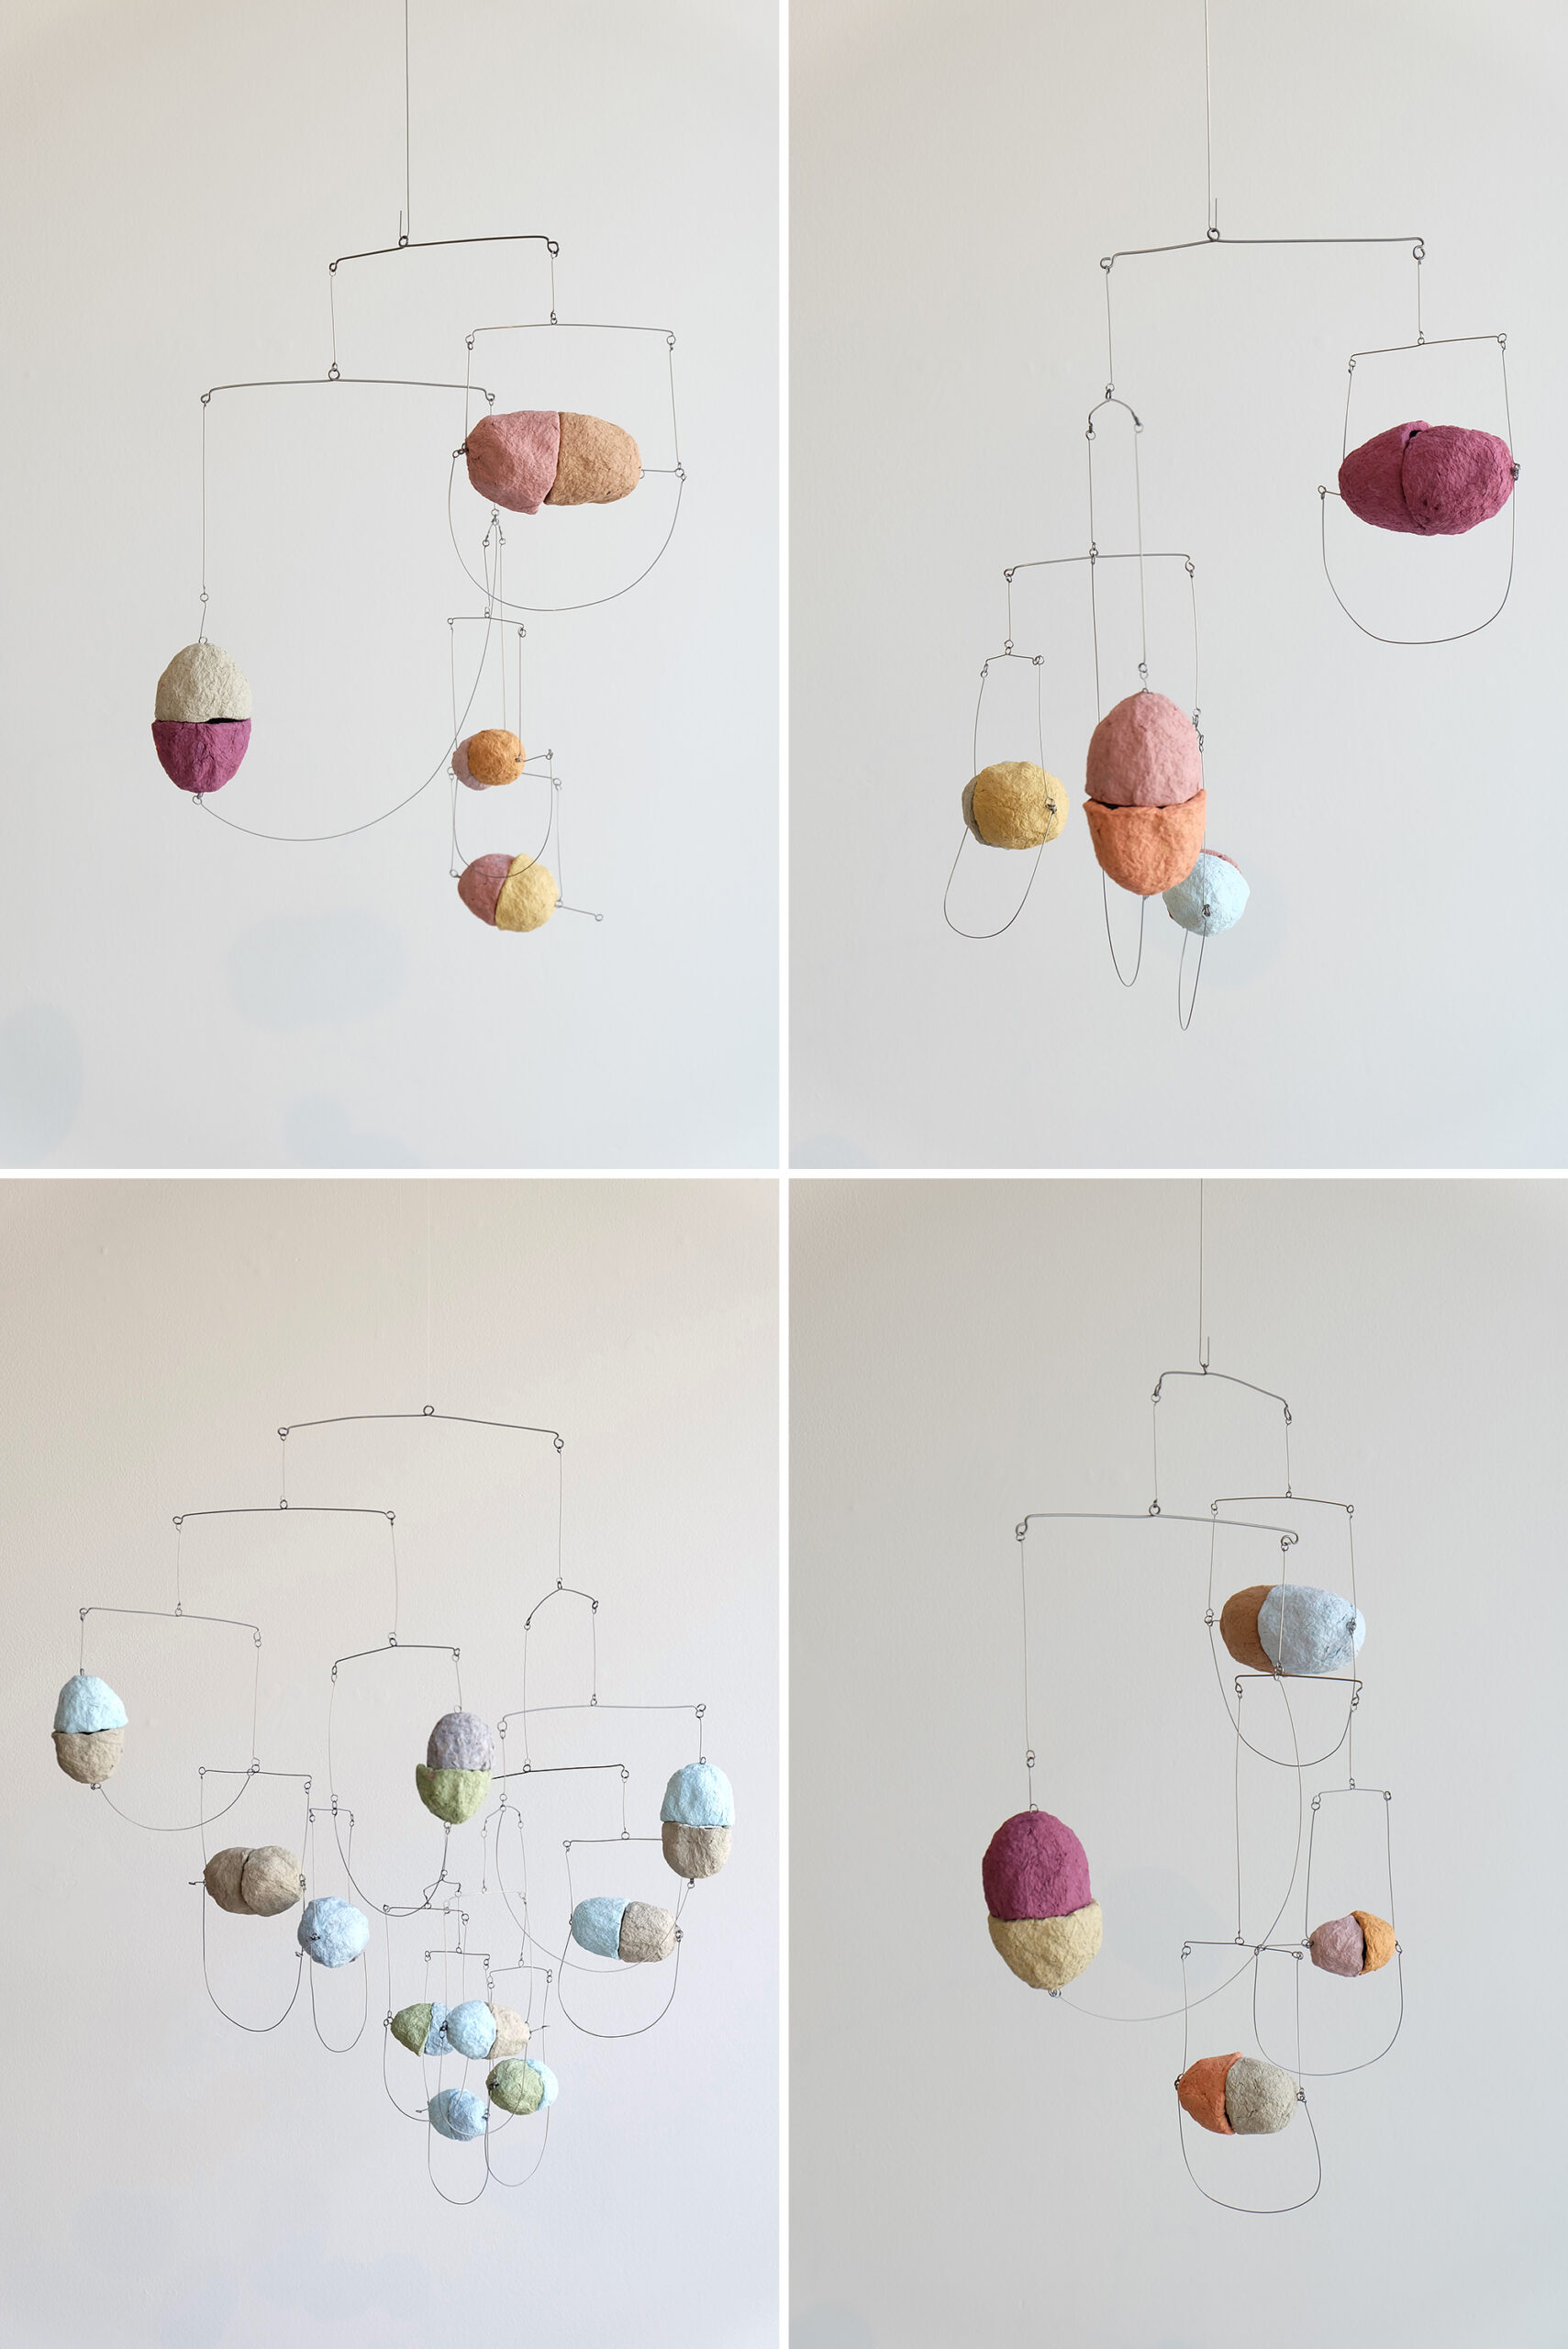 sprawling-paper-pulp-mobiles-by-yuko-nishikawa-suspend-whimsically-colored-pods-in-the-air